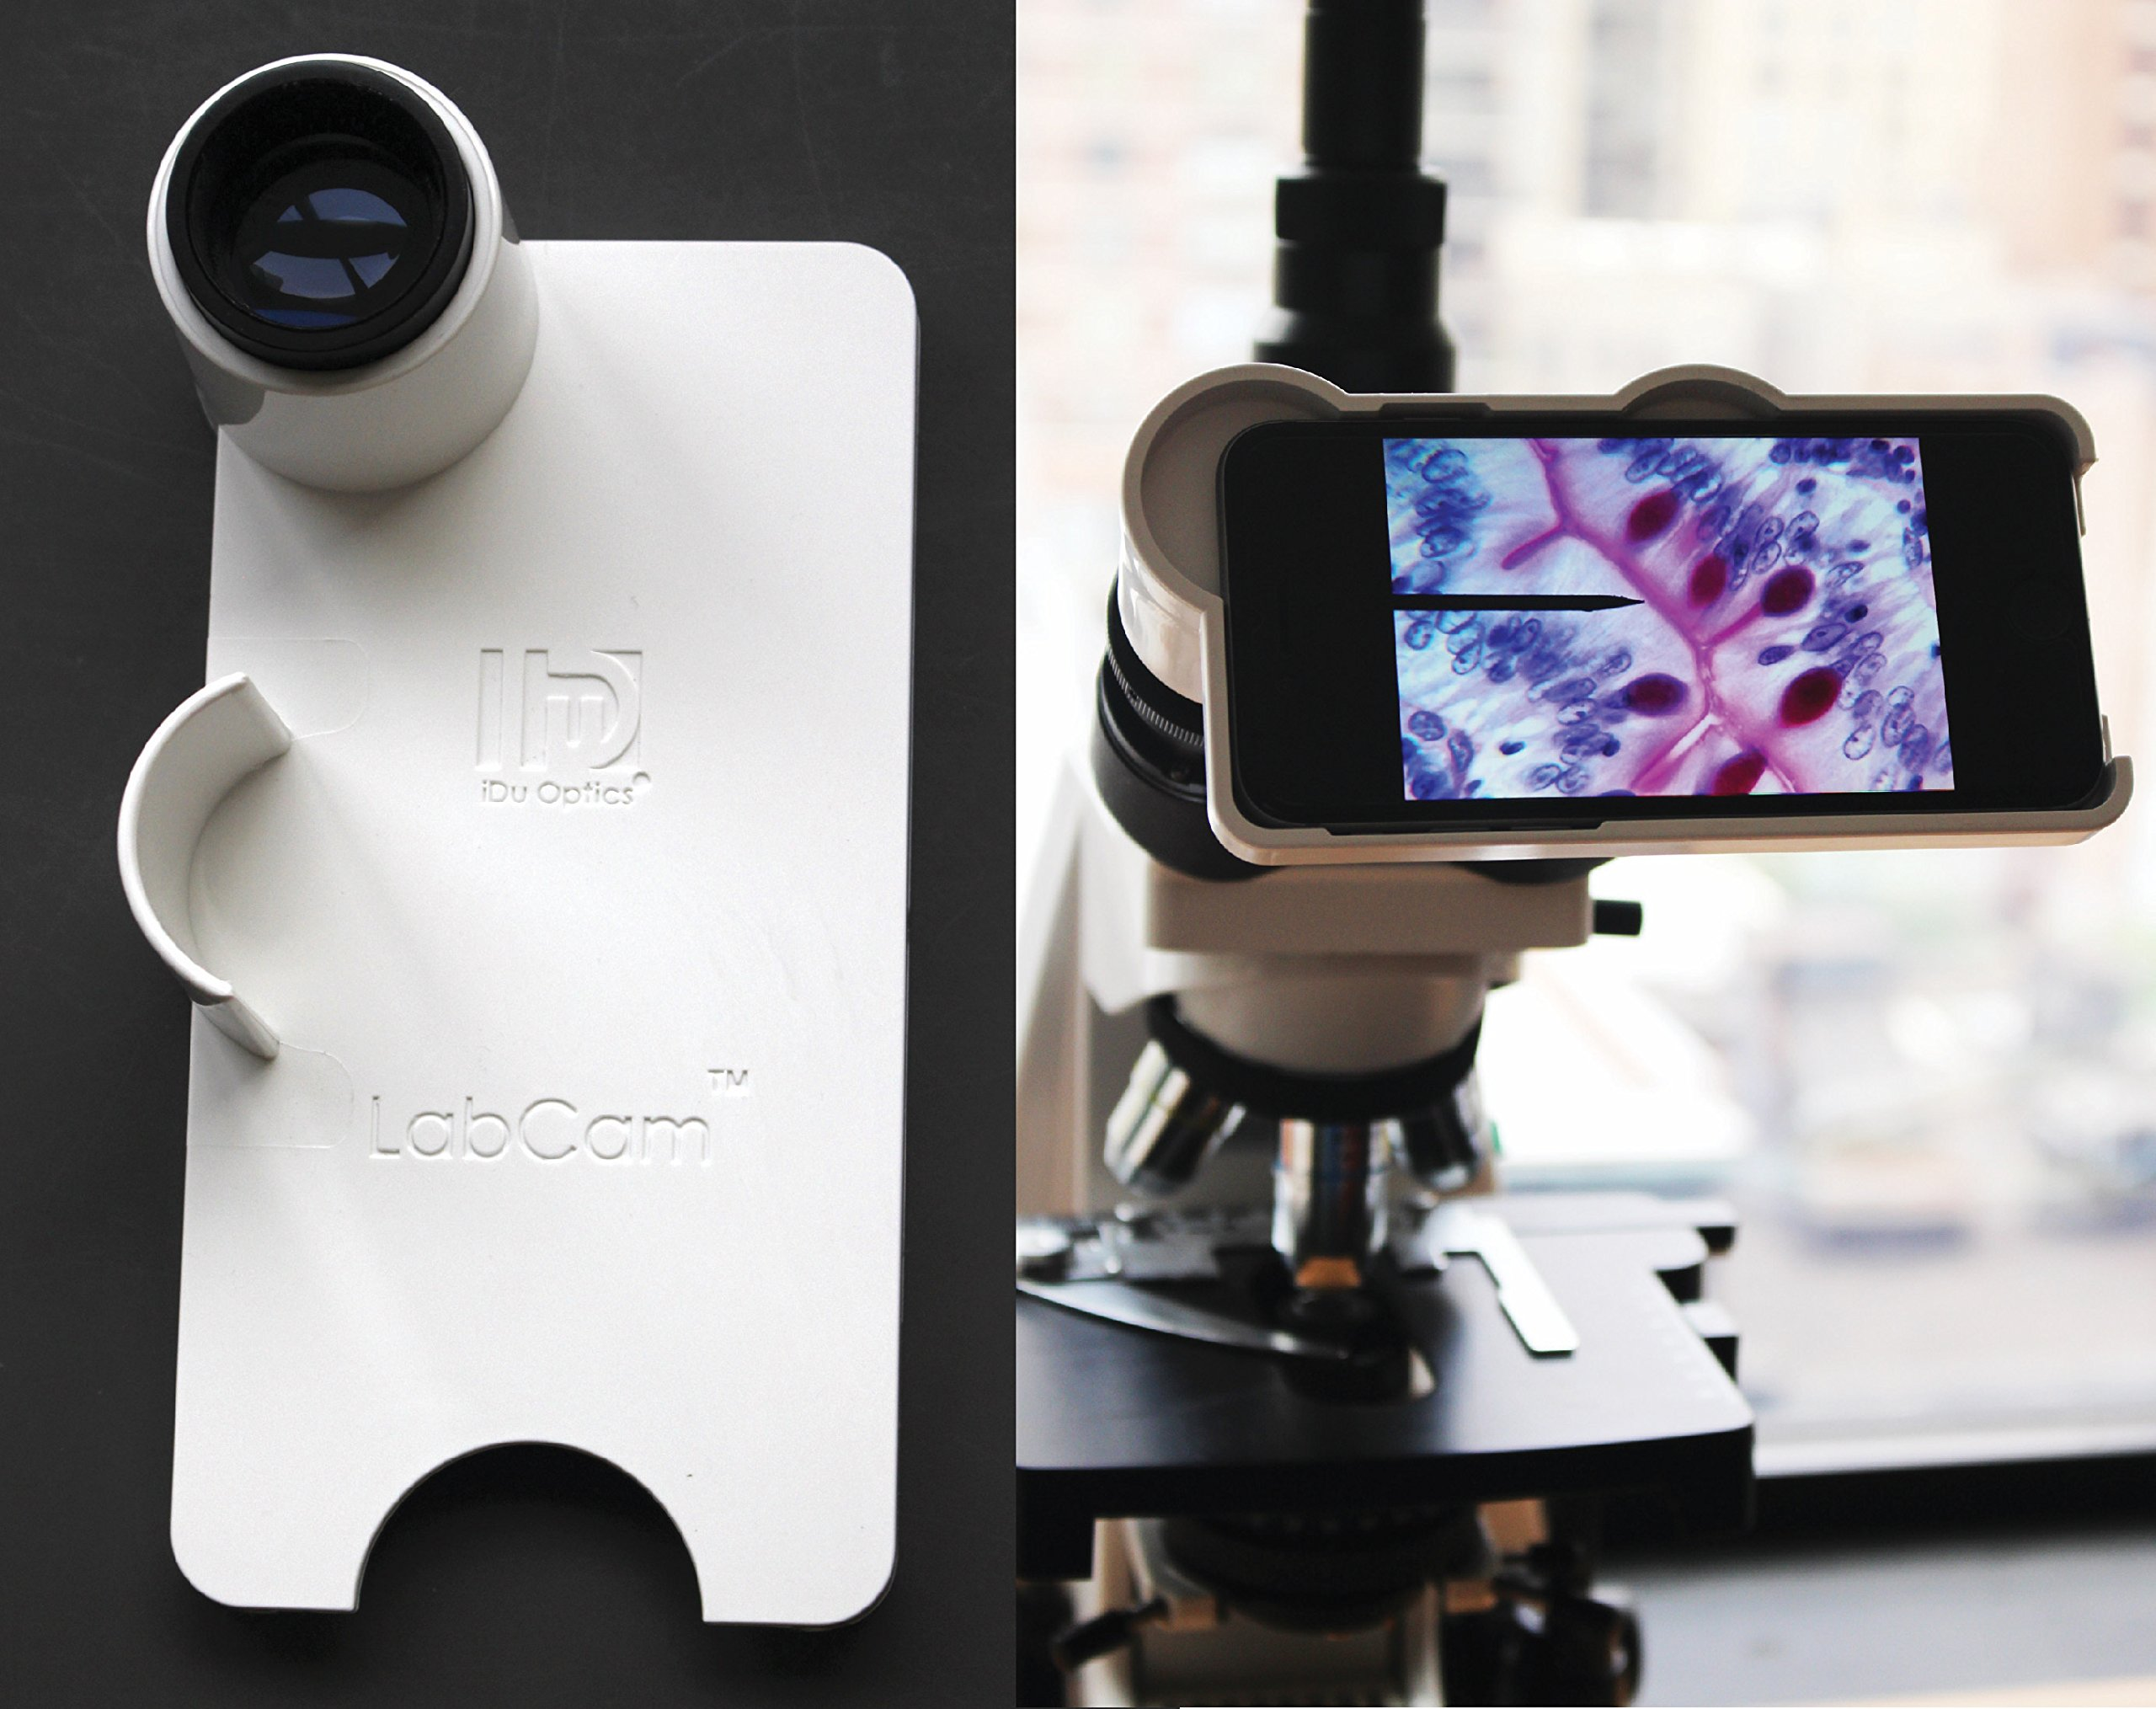 LabCam Microscope Adapter for iPhone 6/6S Plus by iDu Optics